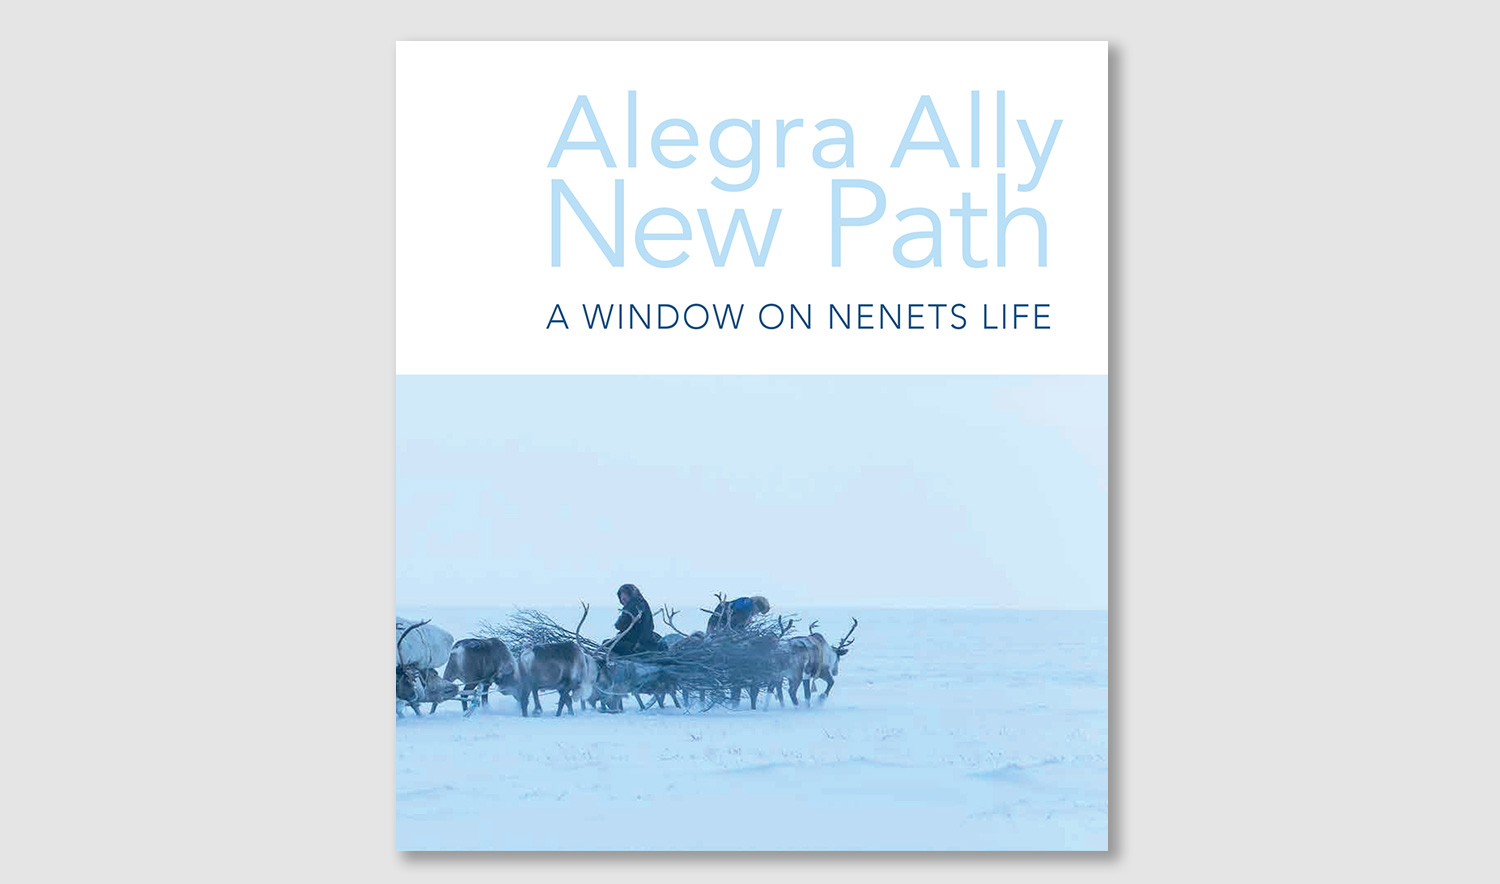 Alegra Ally: New Path – A Window on Nenets Life